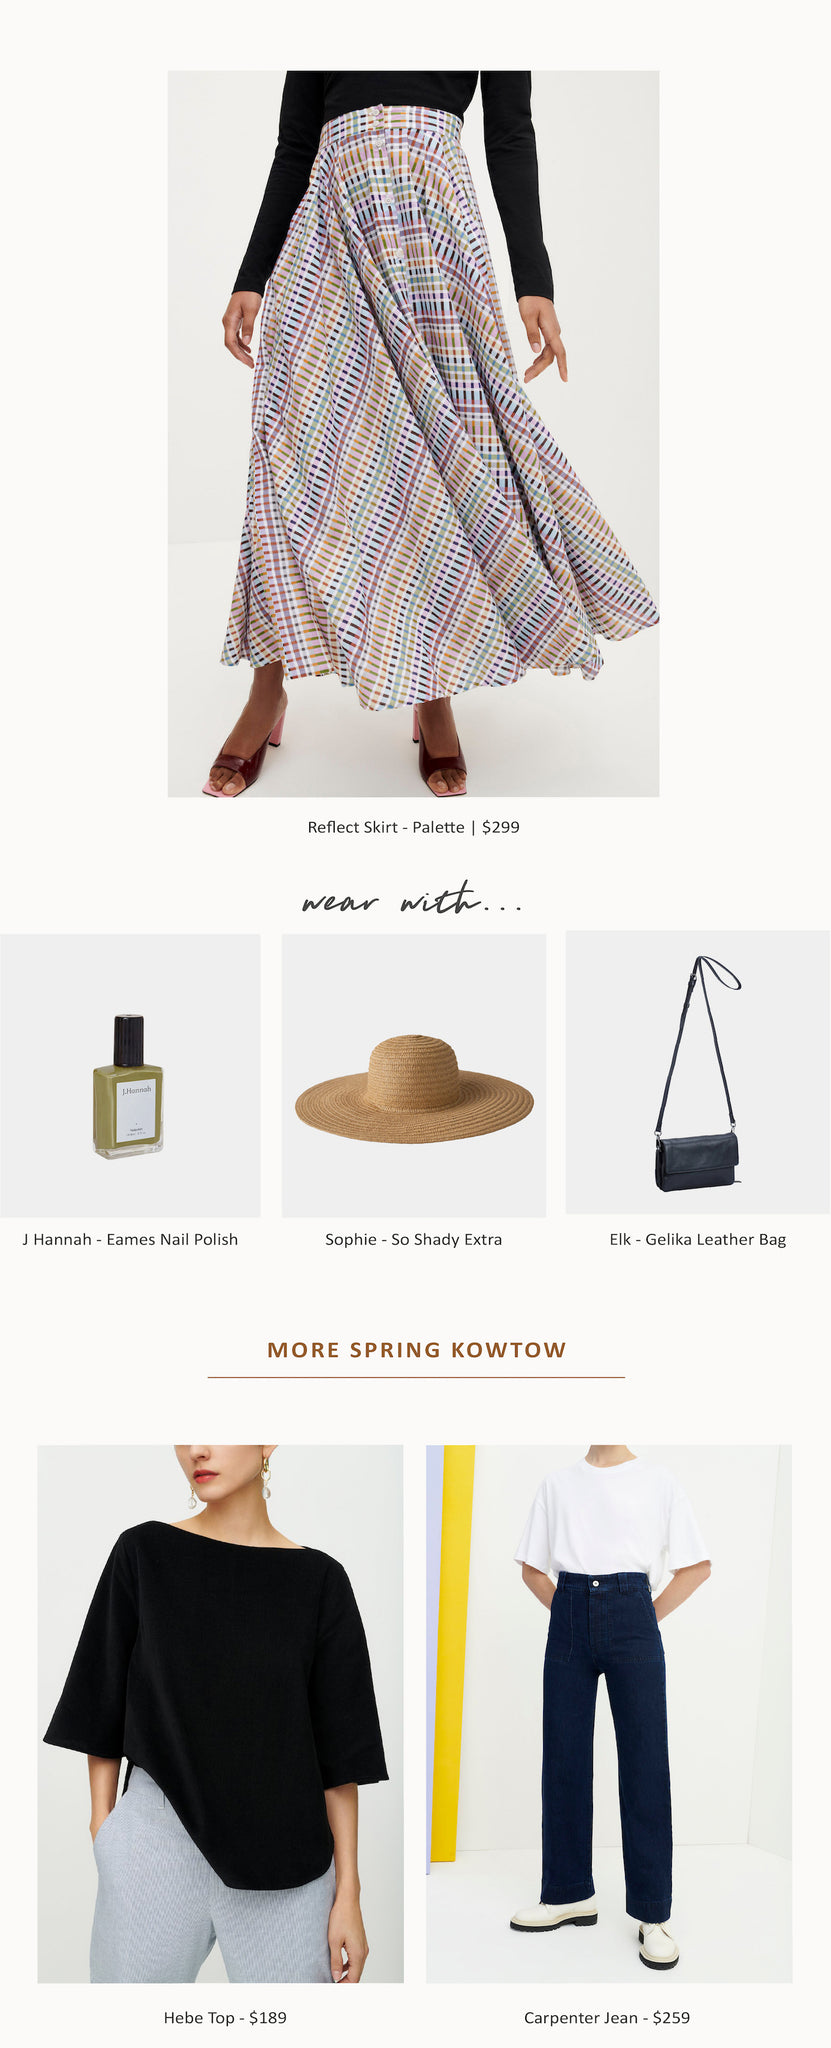 Paper Plane - Kowtow - Complete the look - Accessories - Spring